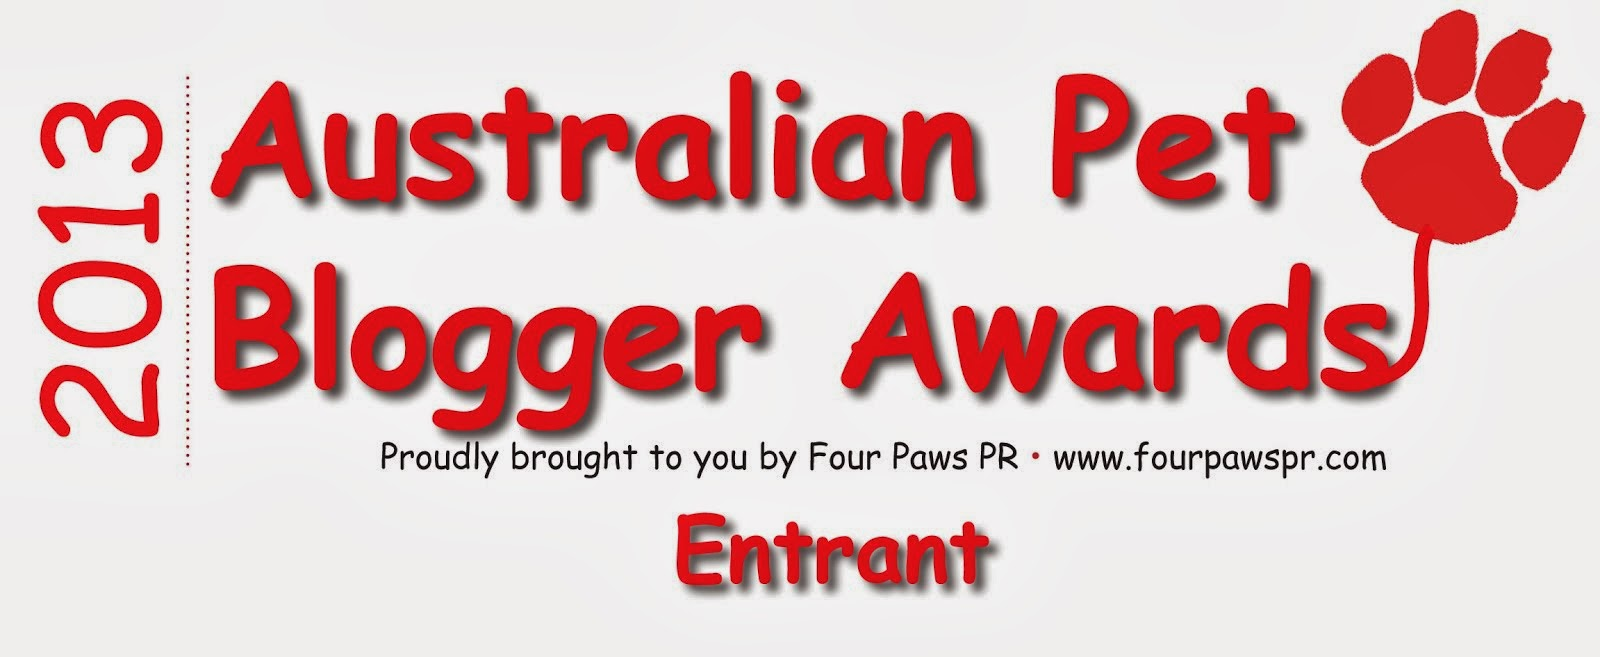 Australian Pet Blogger Awards